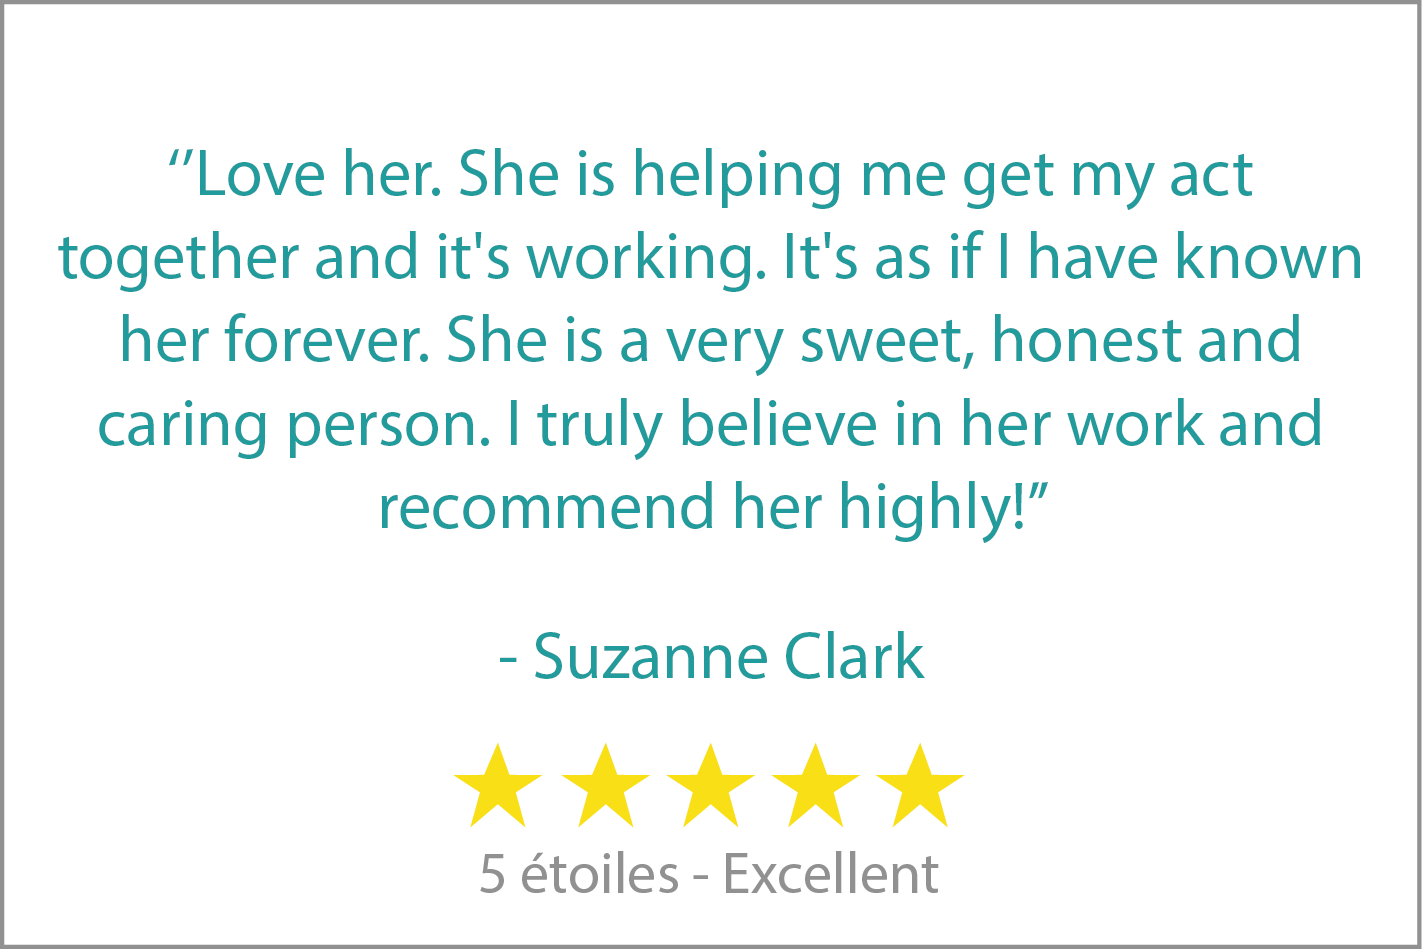 review - Suzanne Clark